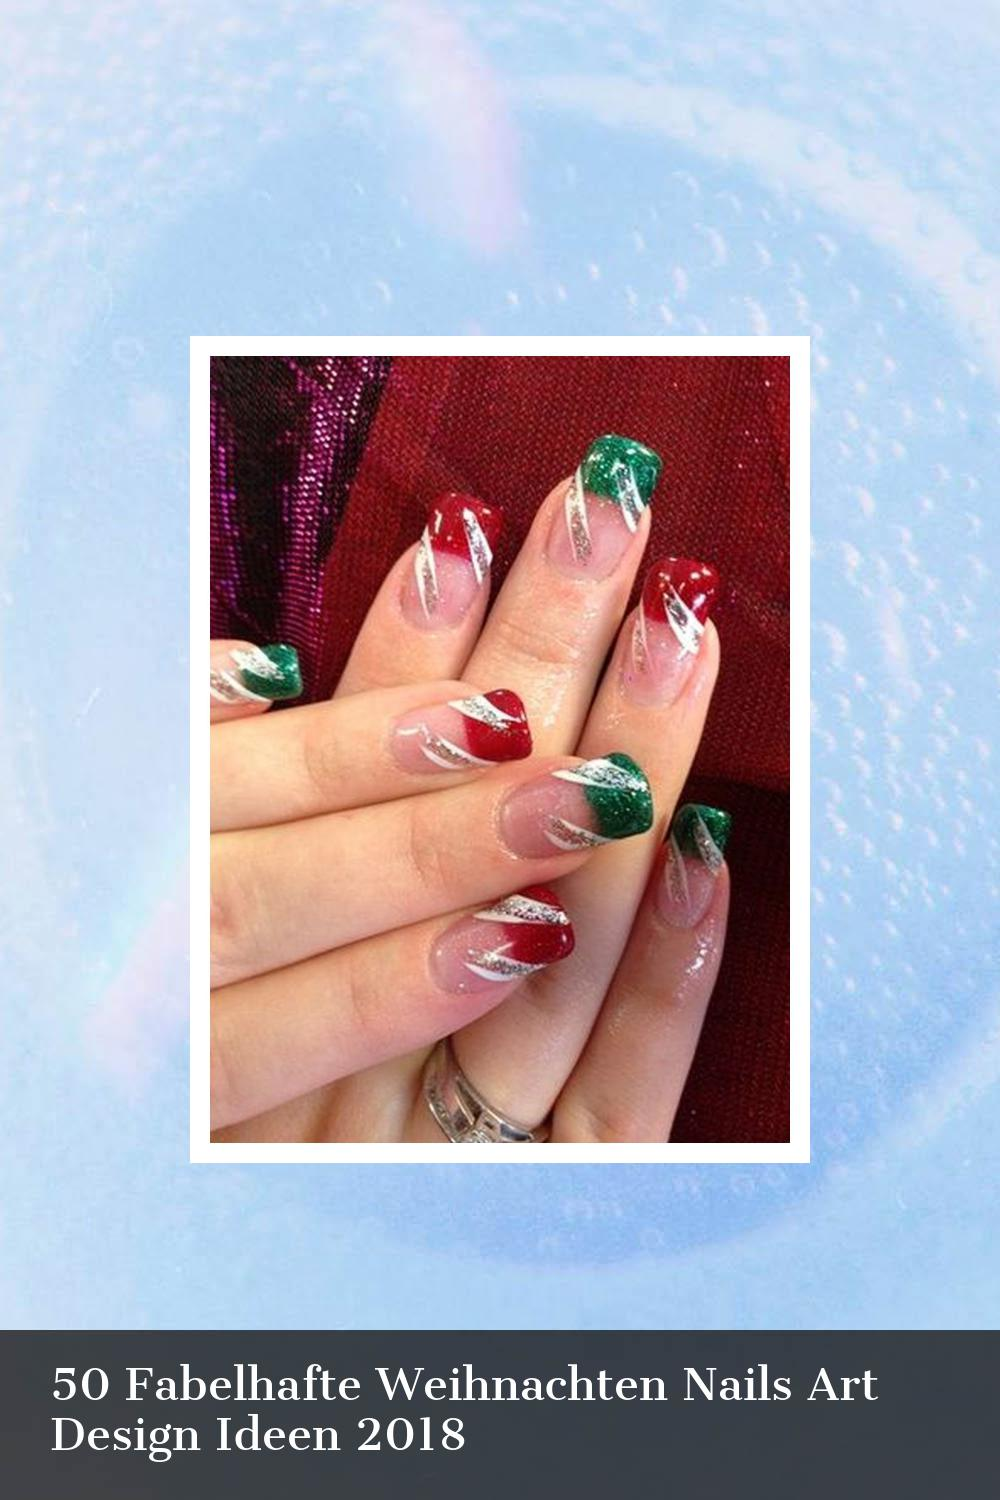 50 Fabelhafte Weihnachten Nails Art Design Ideen 2018 9